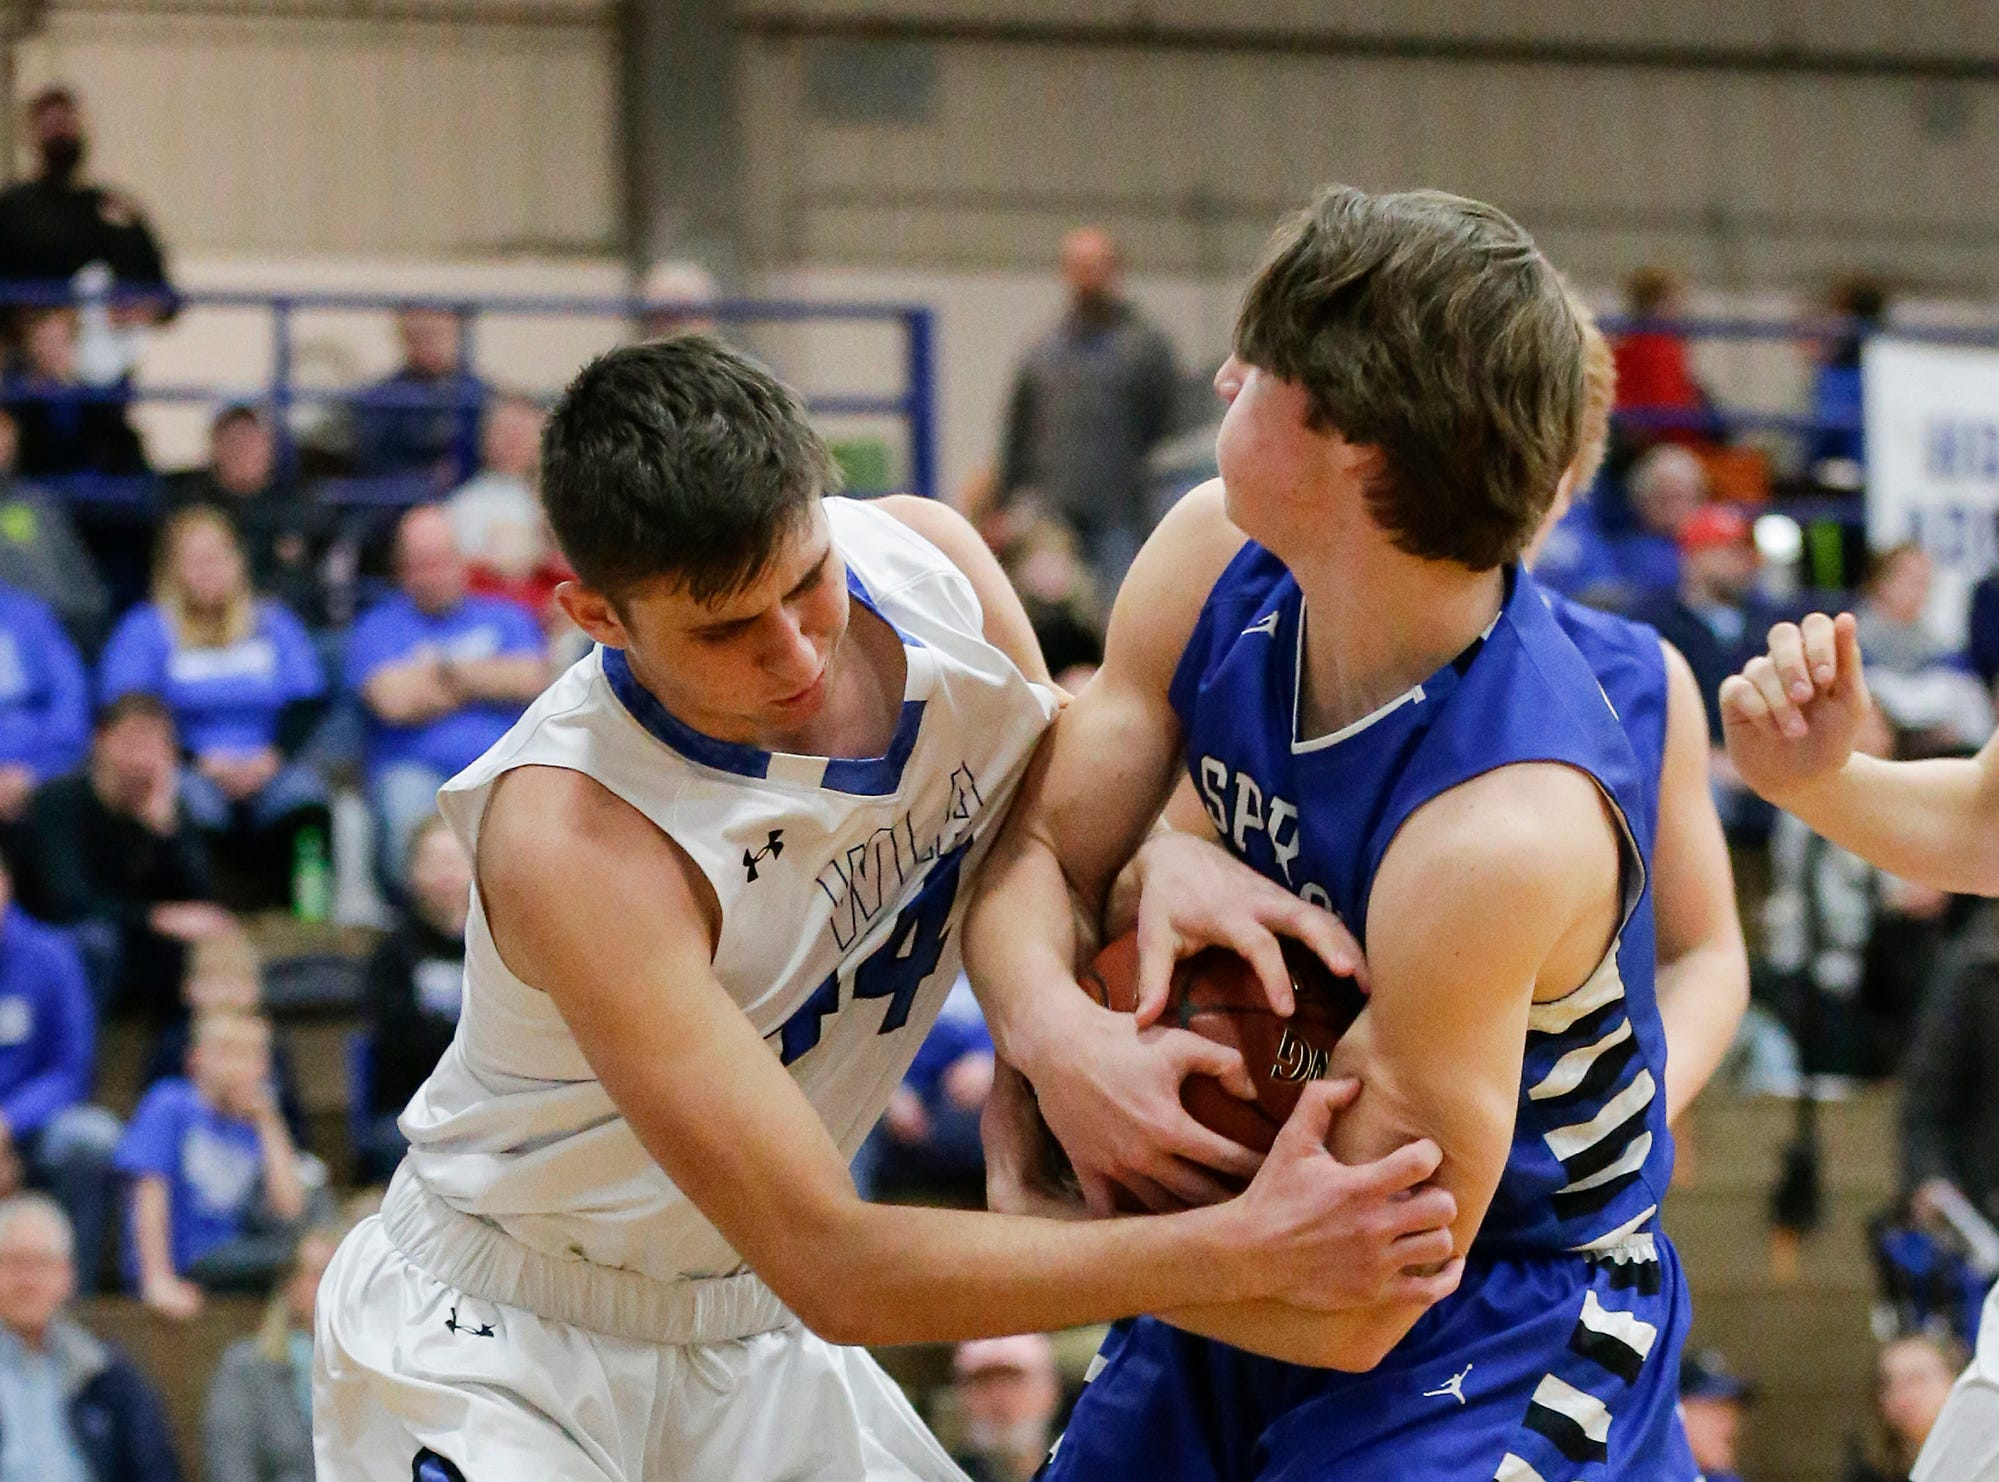 Winnebago Lutheran Academy boys basketball's Benji Cole and St. Mary's Springs Academy's Cade Christensen battle for the ball Tuesday, Jan. 8, 2019, during their game in Fond du Lac. Winnebago Lutheran Academy won the game 69-66.